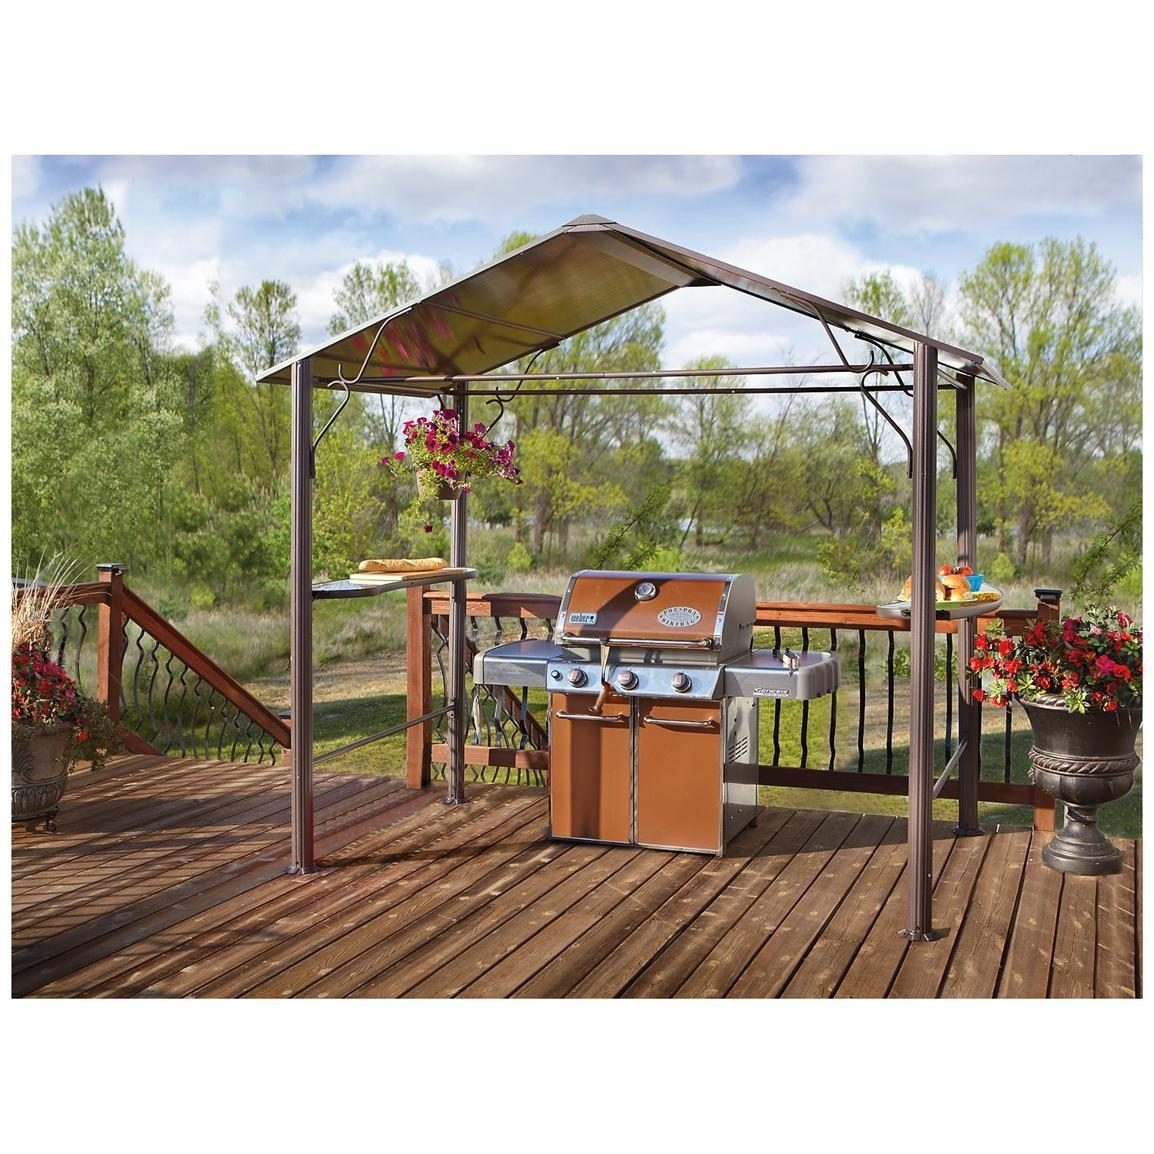 Castlecreek Hard Top Bbq Gazebo Awnings